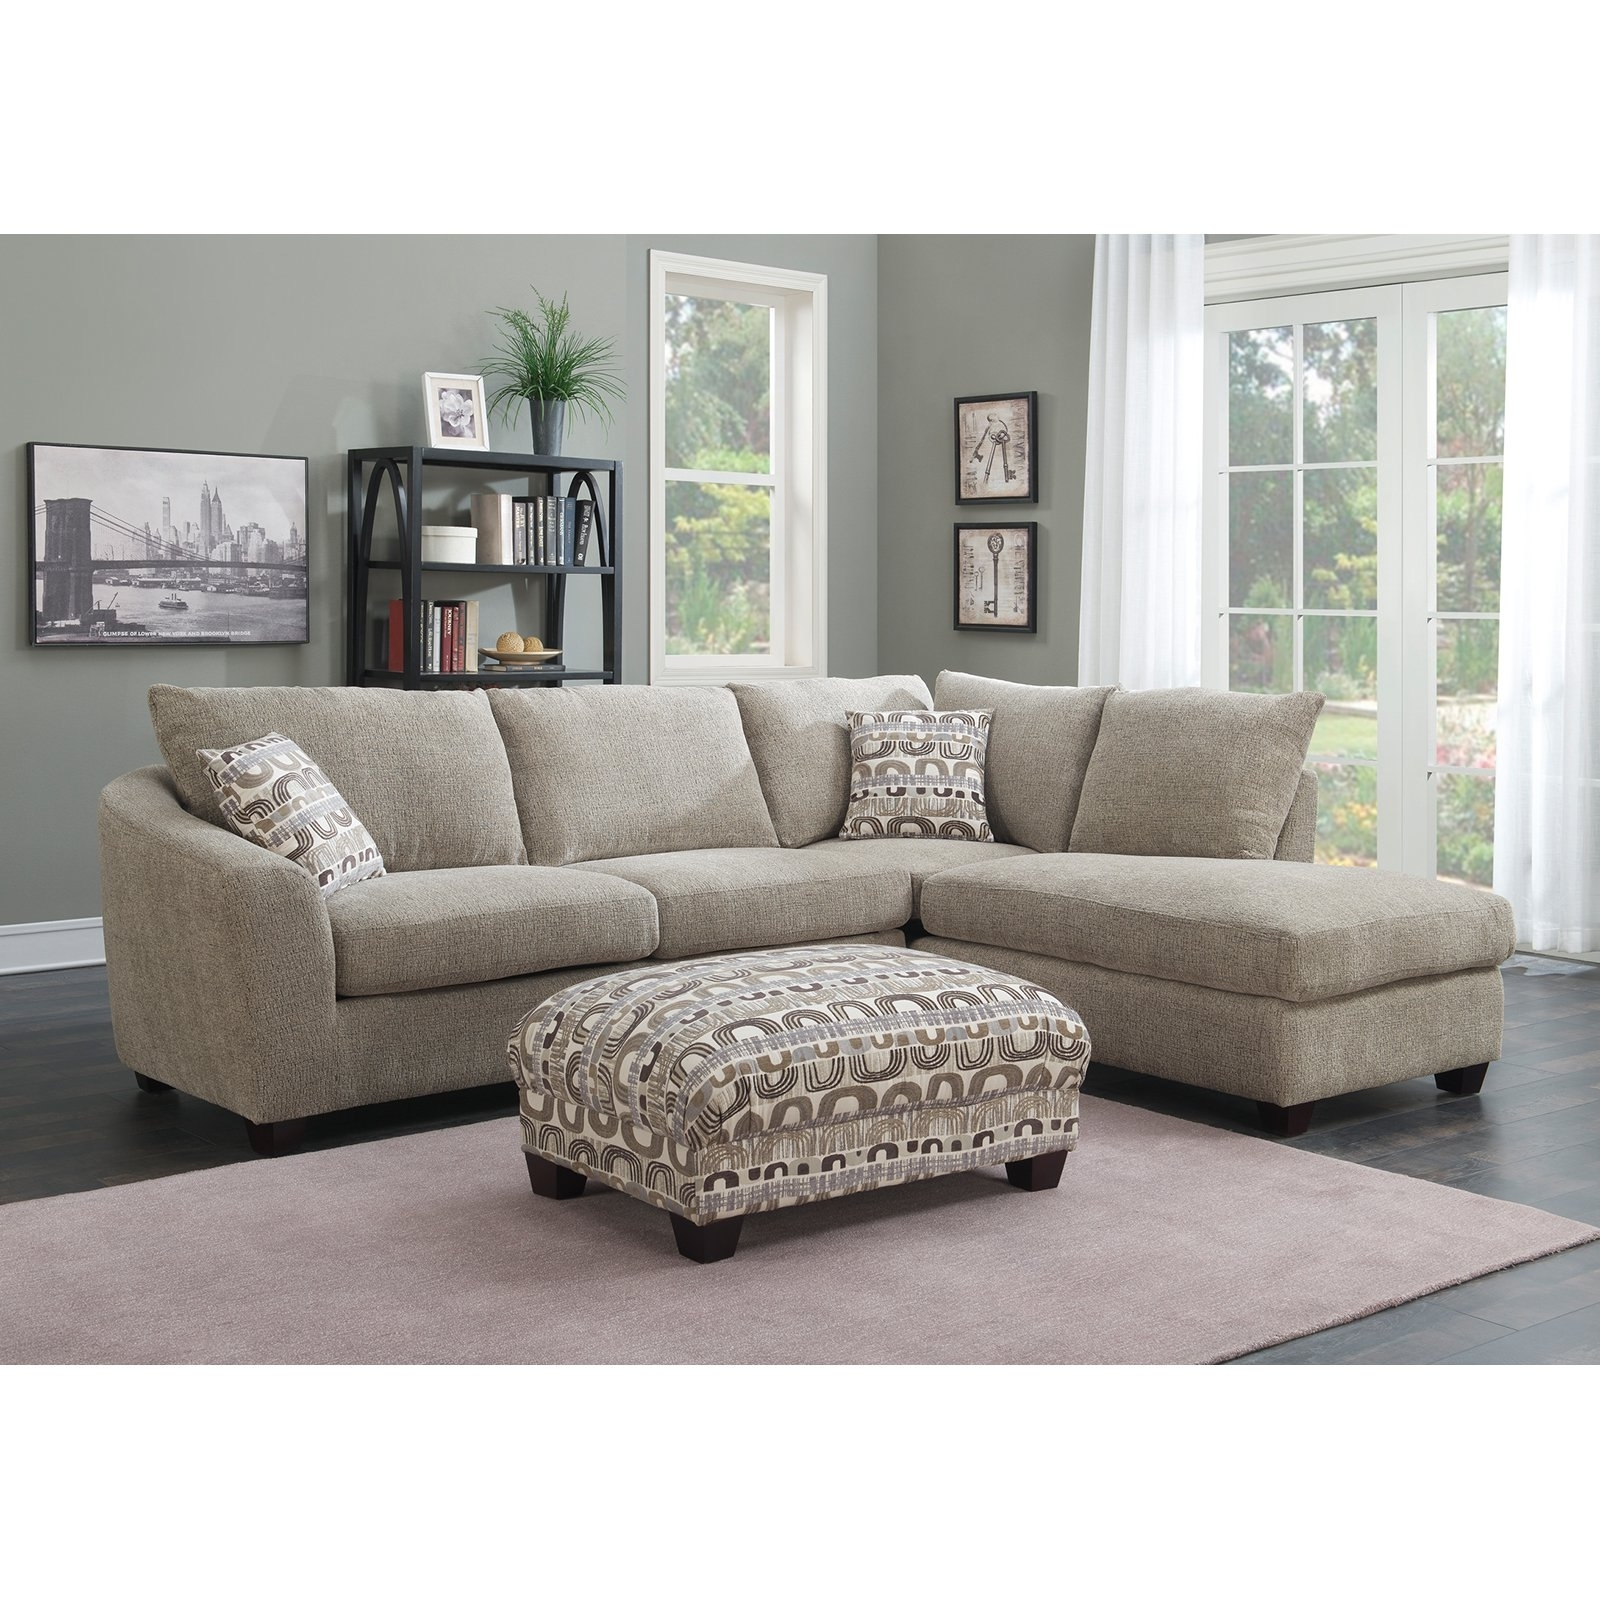 2 Piece Sectional With Chaise – Tidex Inside Arrowmask 2 Piece Sectionals With Laf Chaise (Image 2 of 25)